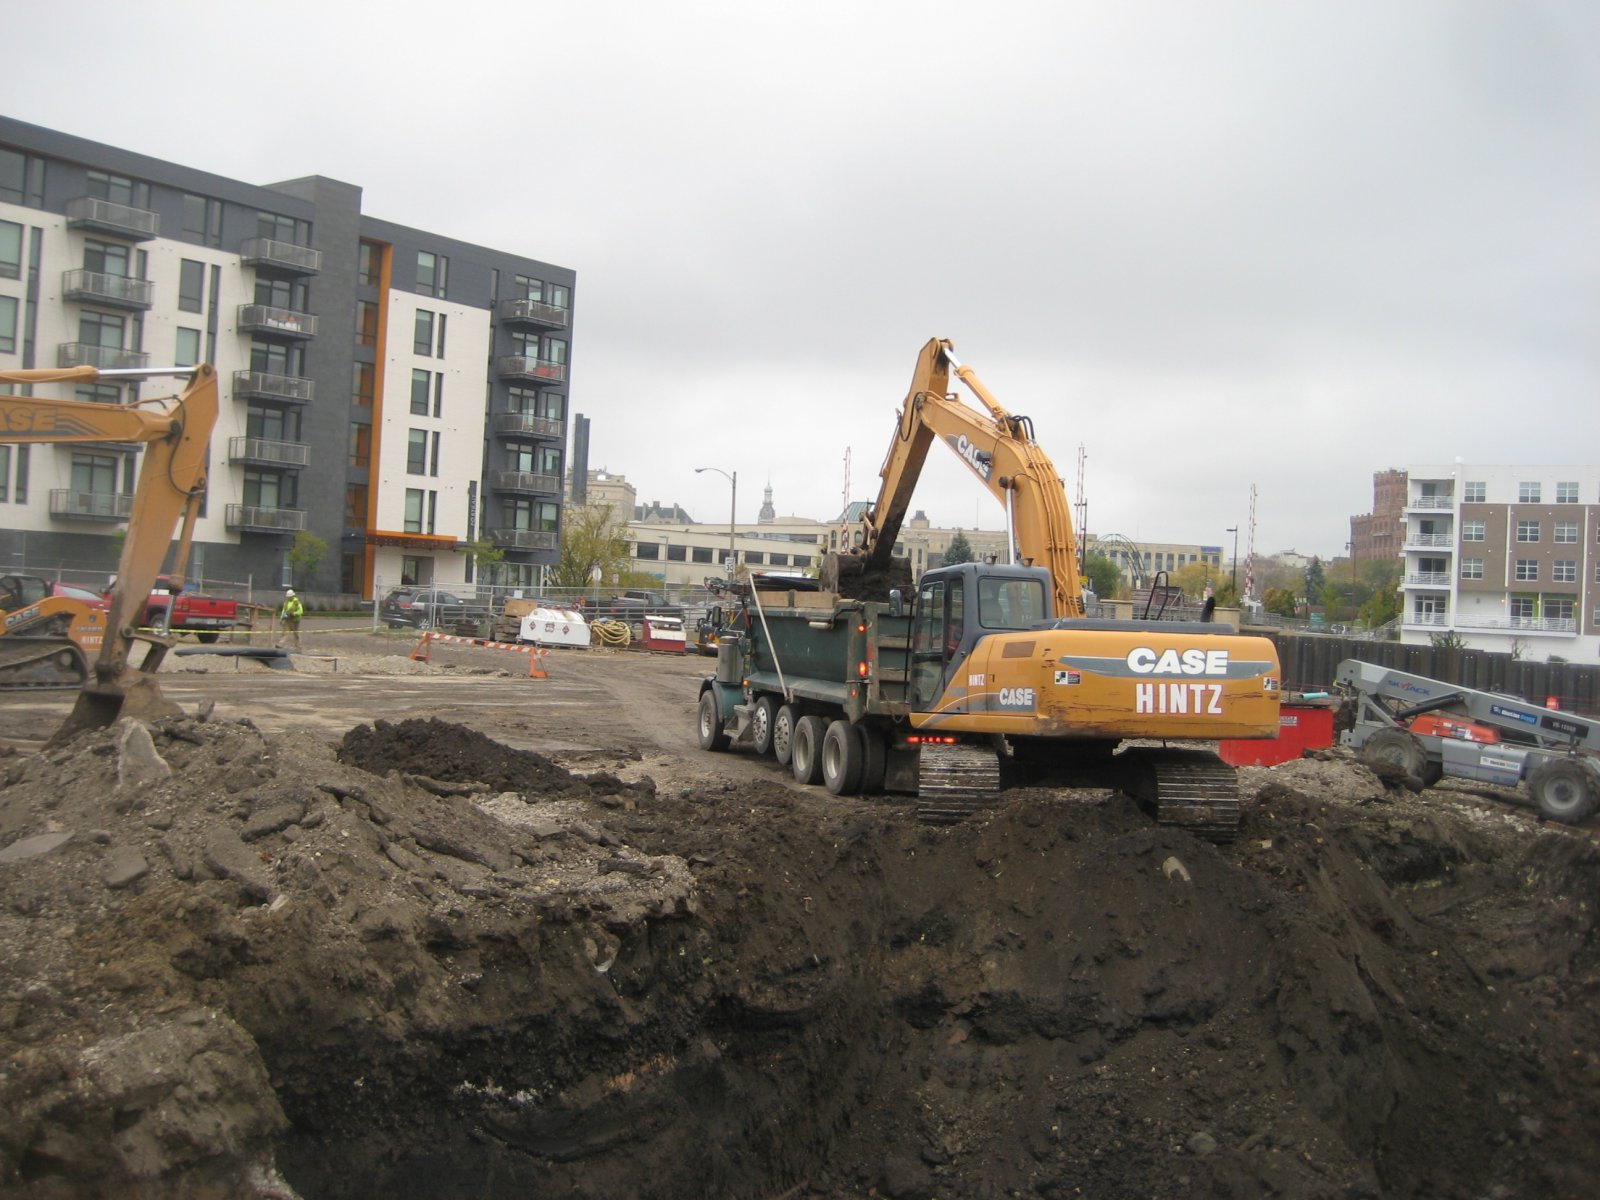 Work has started at the site.